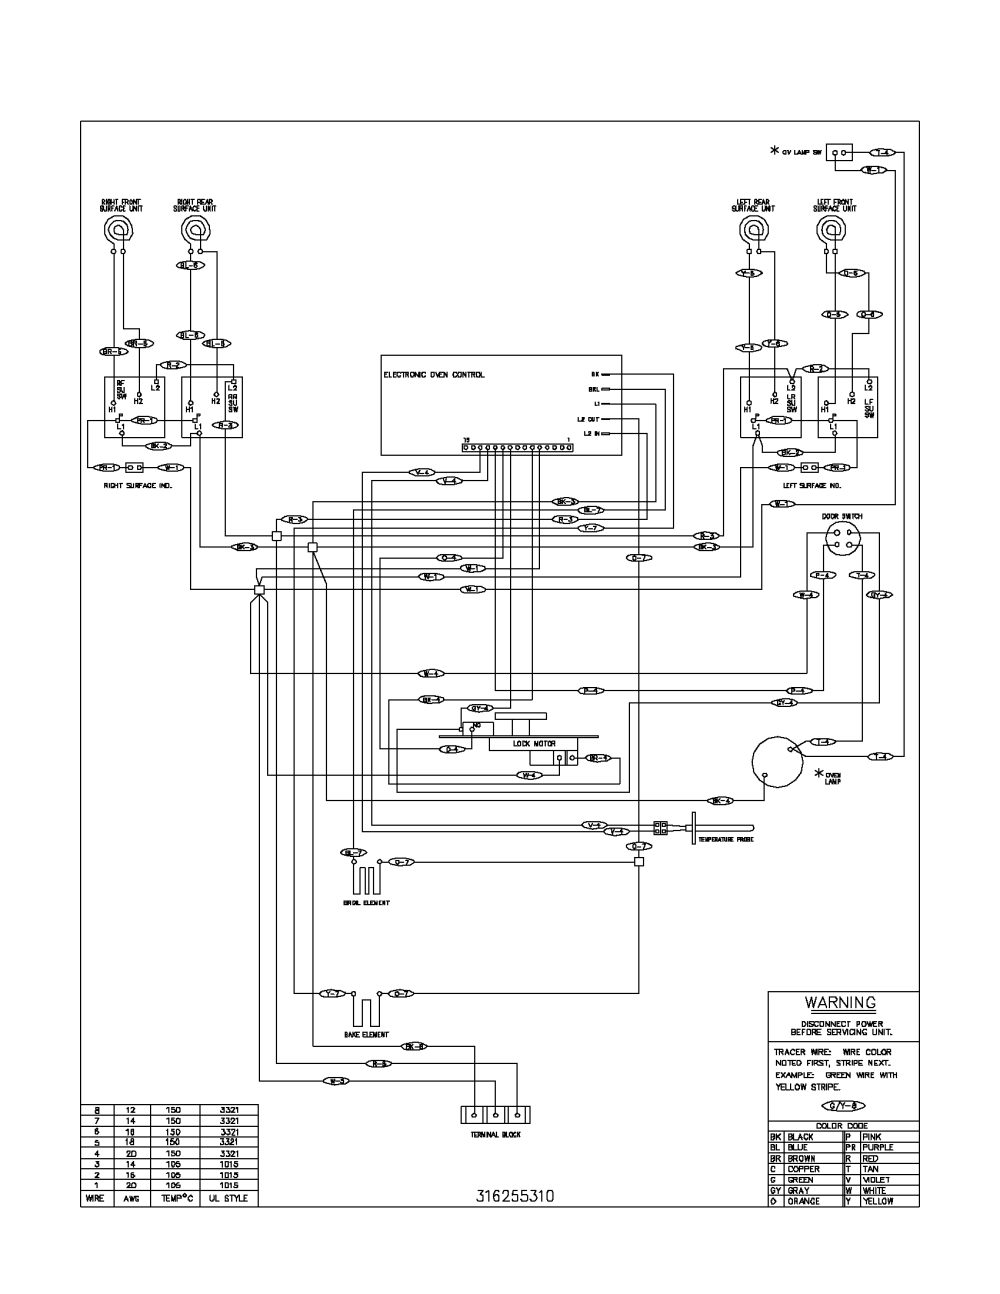 medium resolution of kelvinator model kef355asg free standing electric genuine parts general electric refrigerator wiring diagrams kelvinator refrigerator wiring diagram